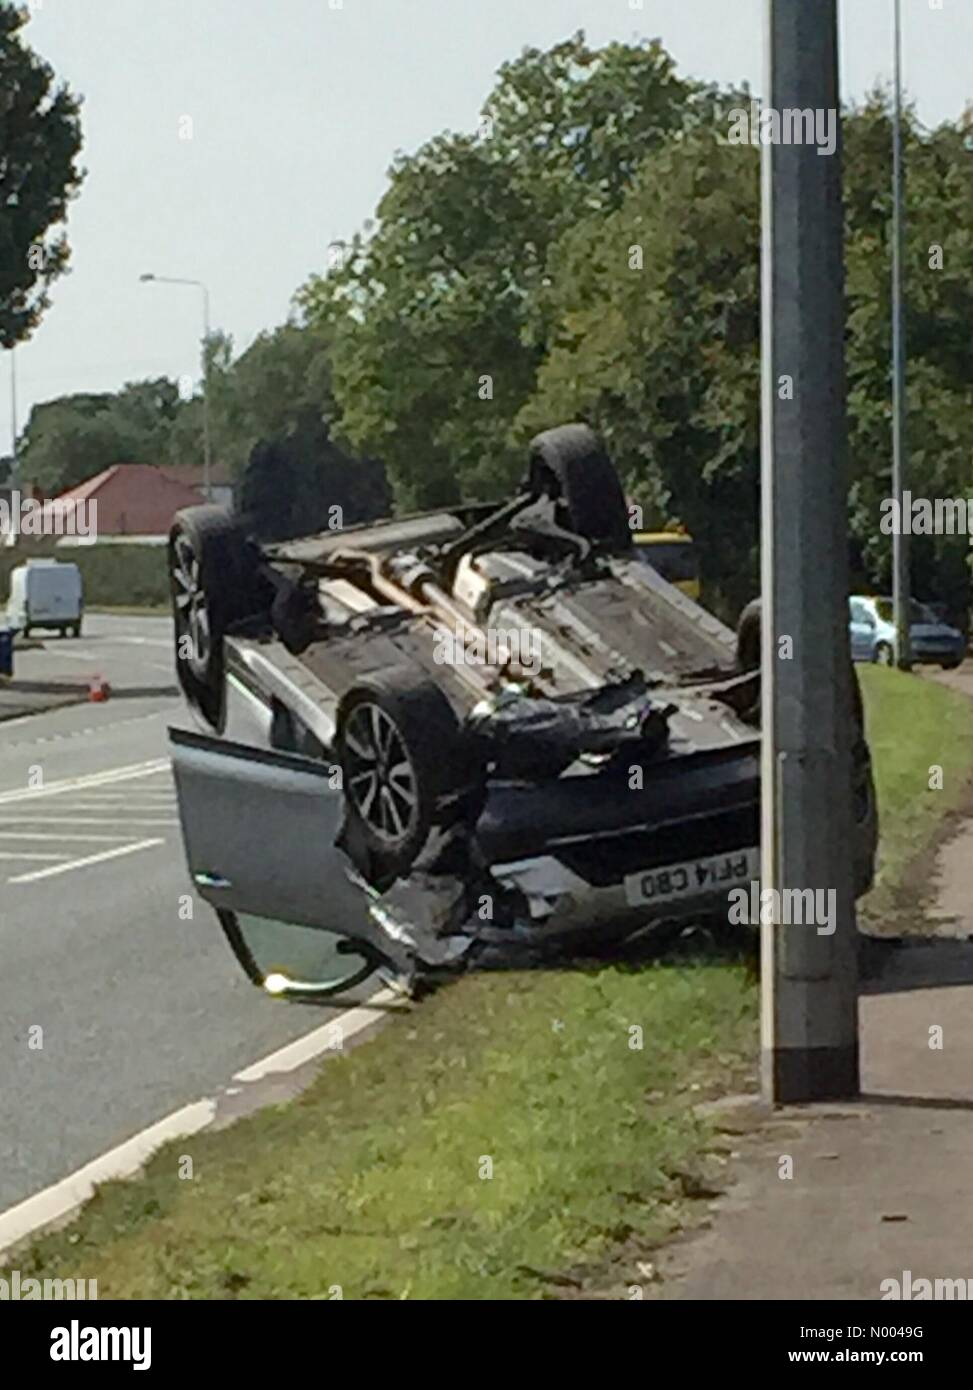 Preston, UK. 11th September, 2015. High speed crash resulting in overturned vehicle on A59 Liverpool Road near Brook - Stock Image